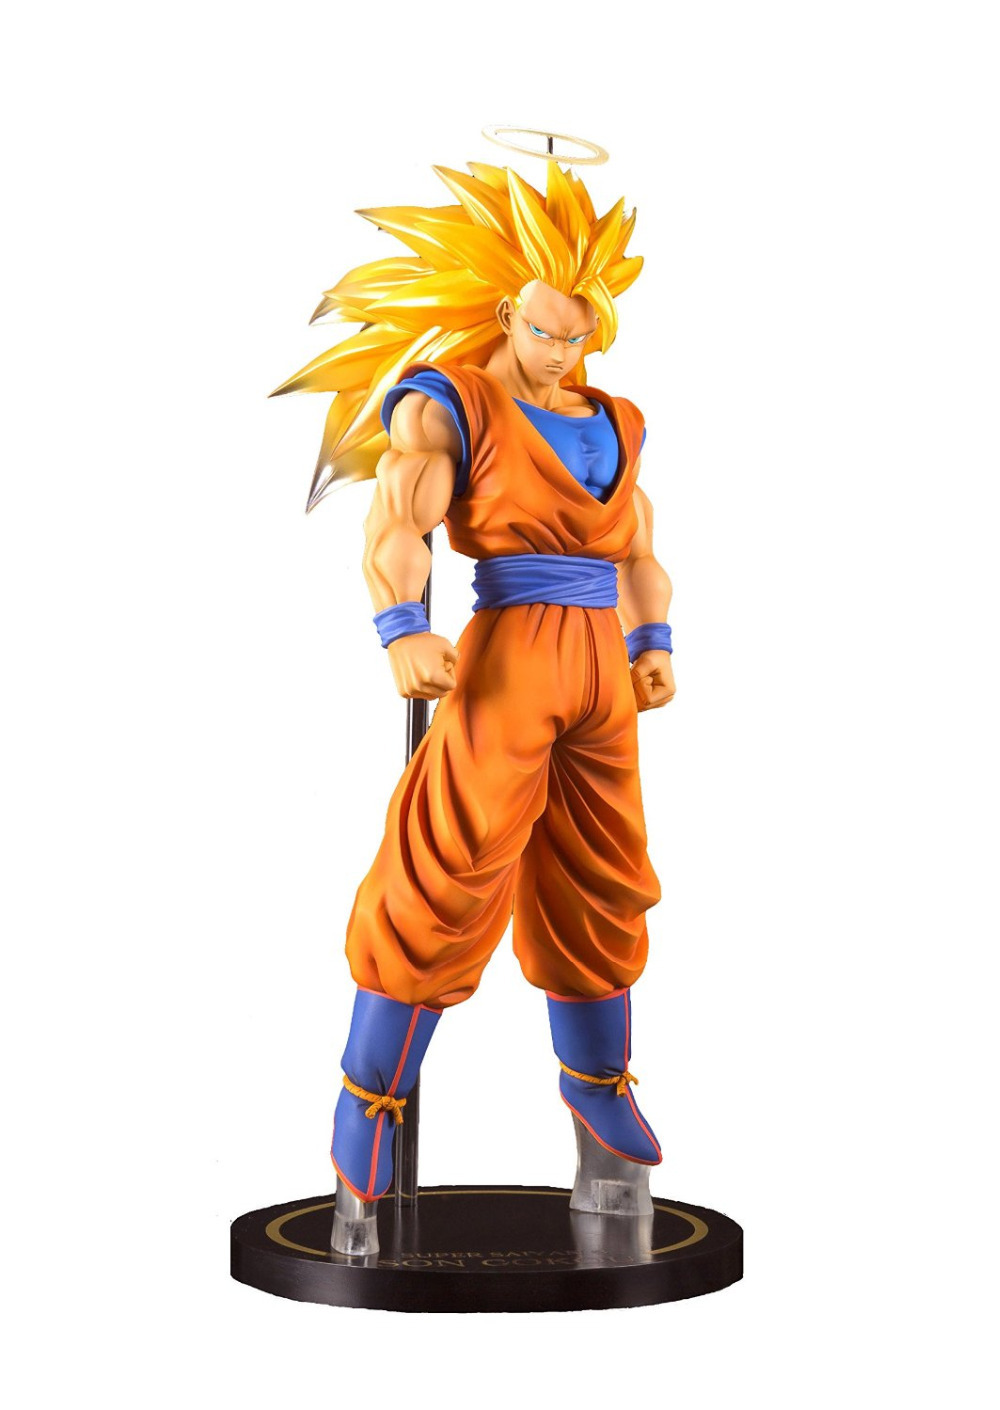 New hot anime figure toy dragon ball z super saiyan 3 goku figurine statues 22cm no box loose in action toy figures from toys hobbies on aliexpress com